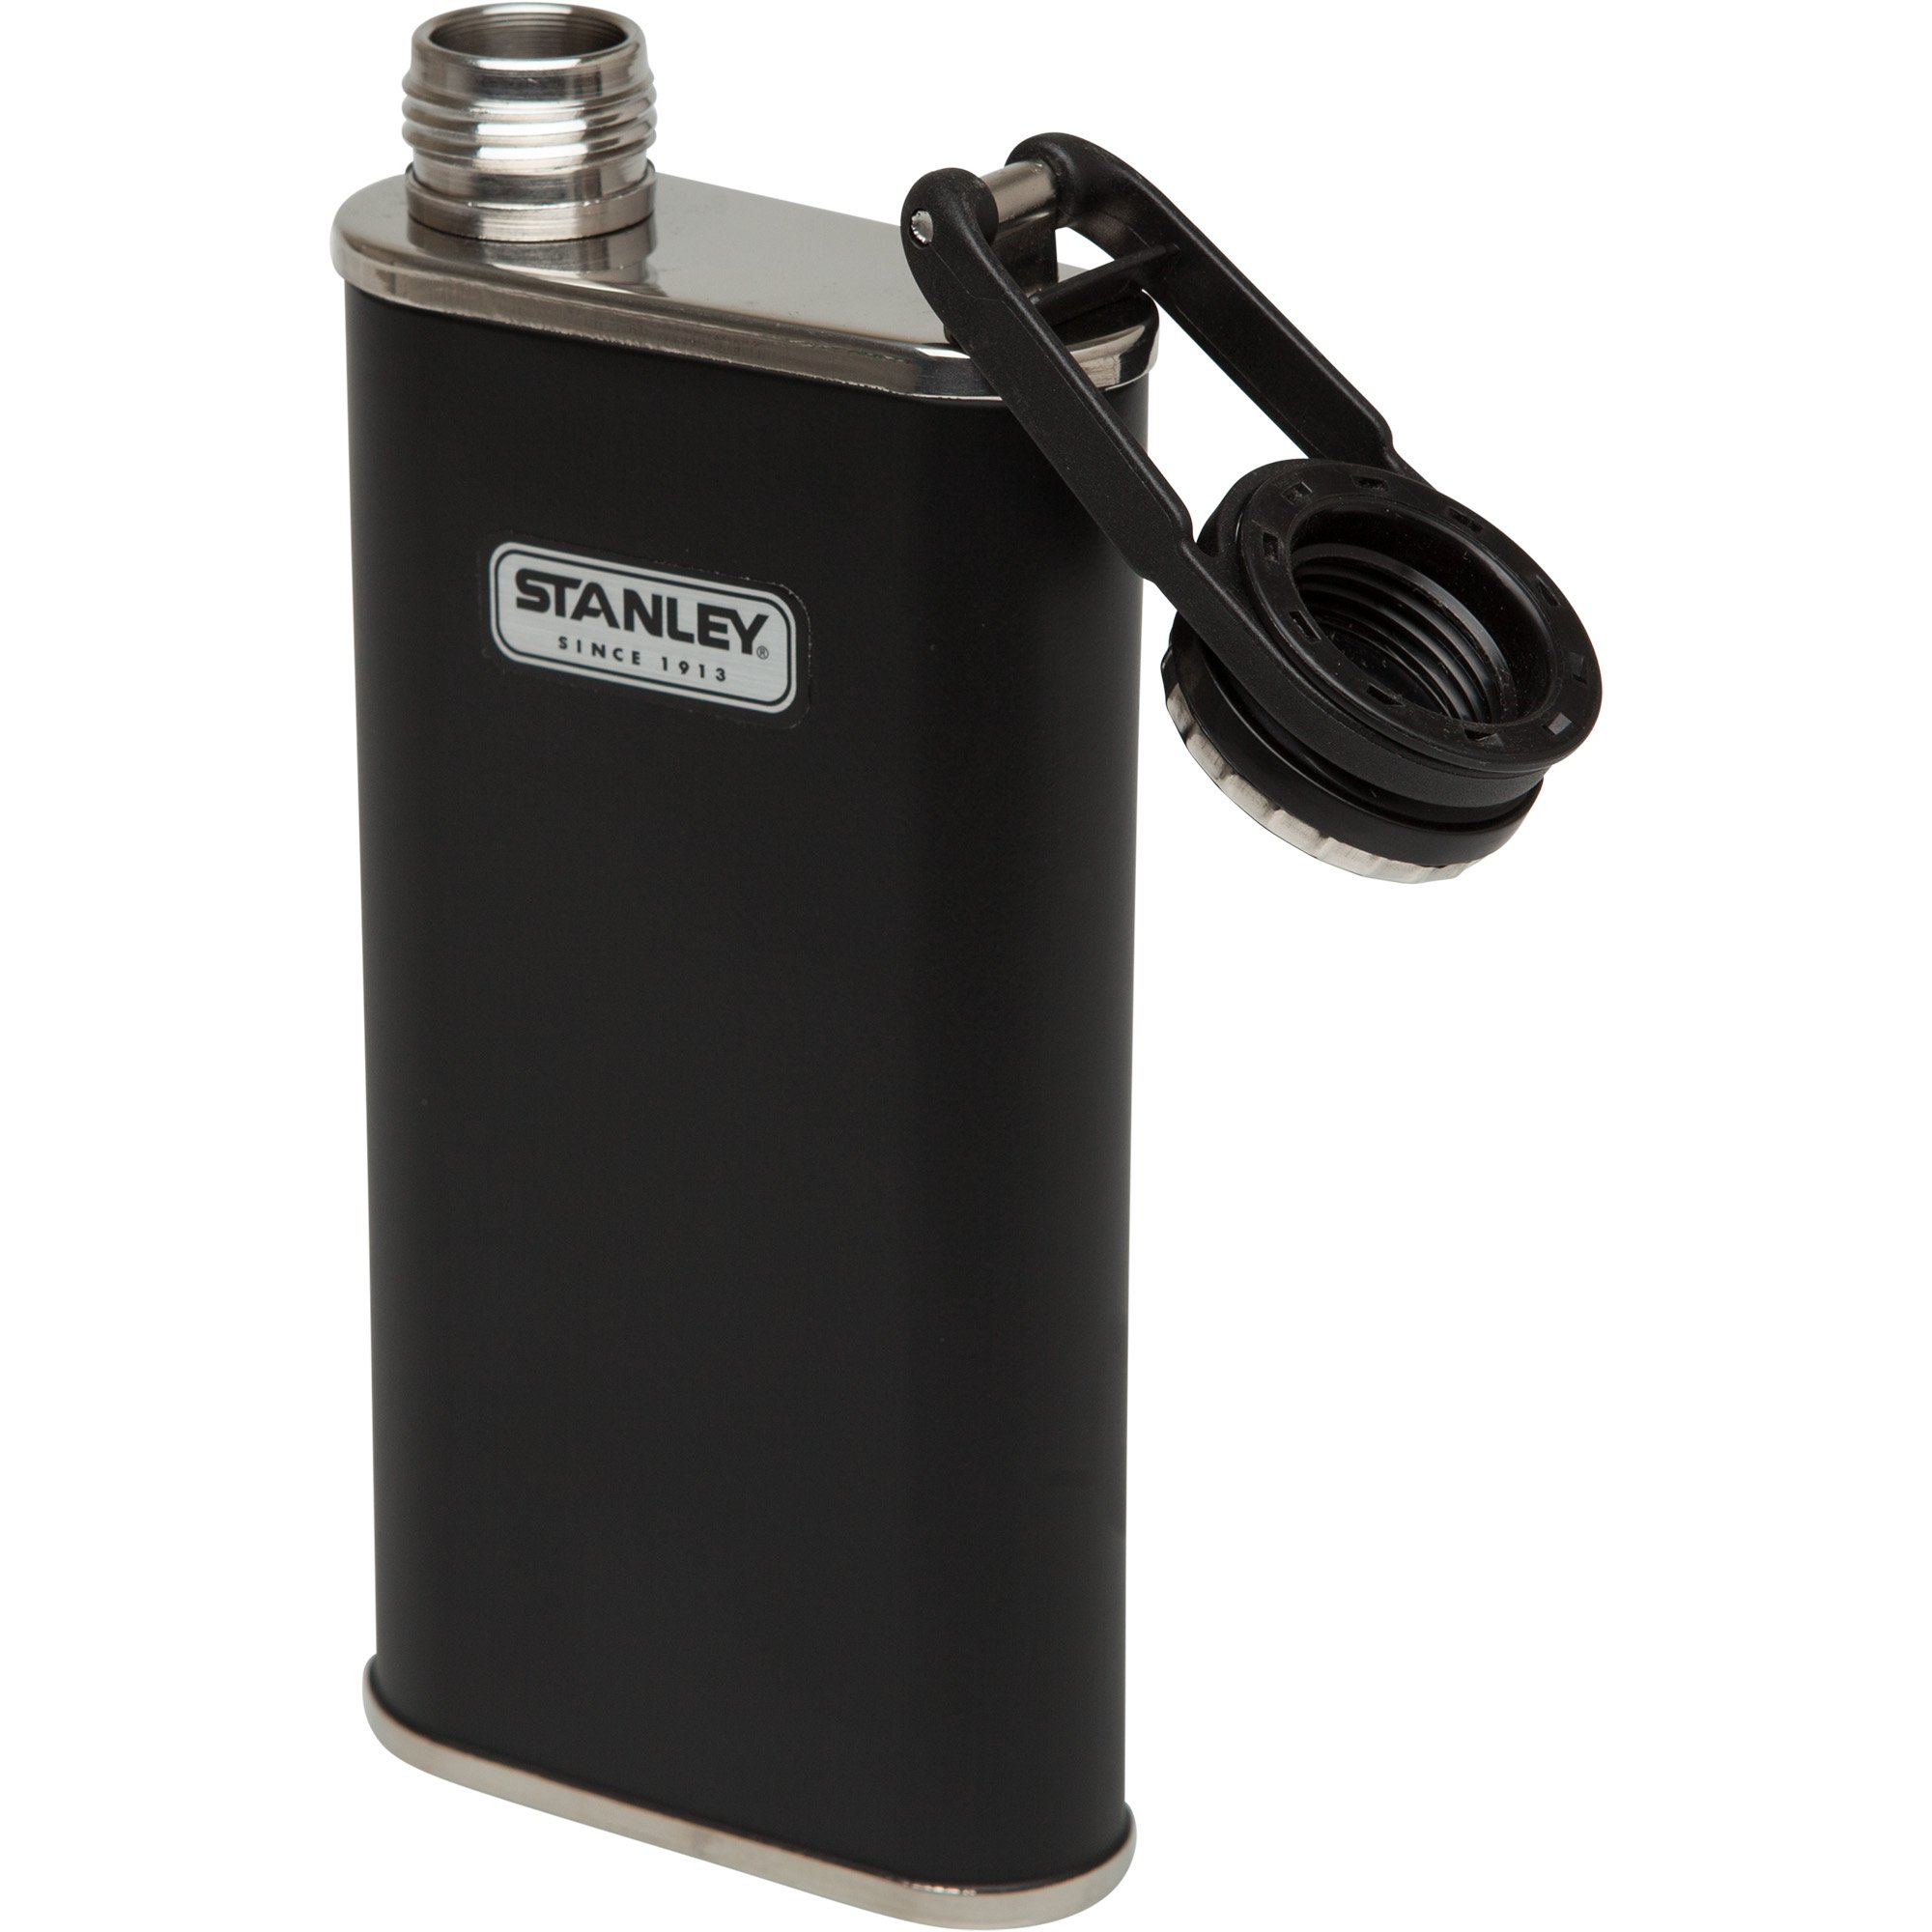 Stanley Classic Flask, Matte Black, 8 Oz by Stanley (Image #1)